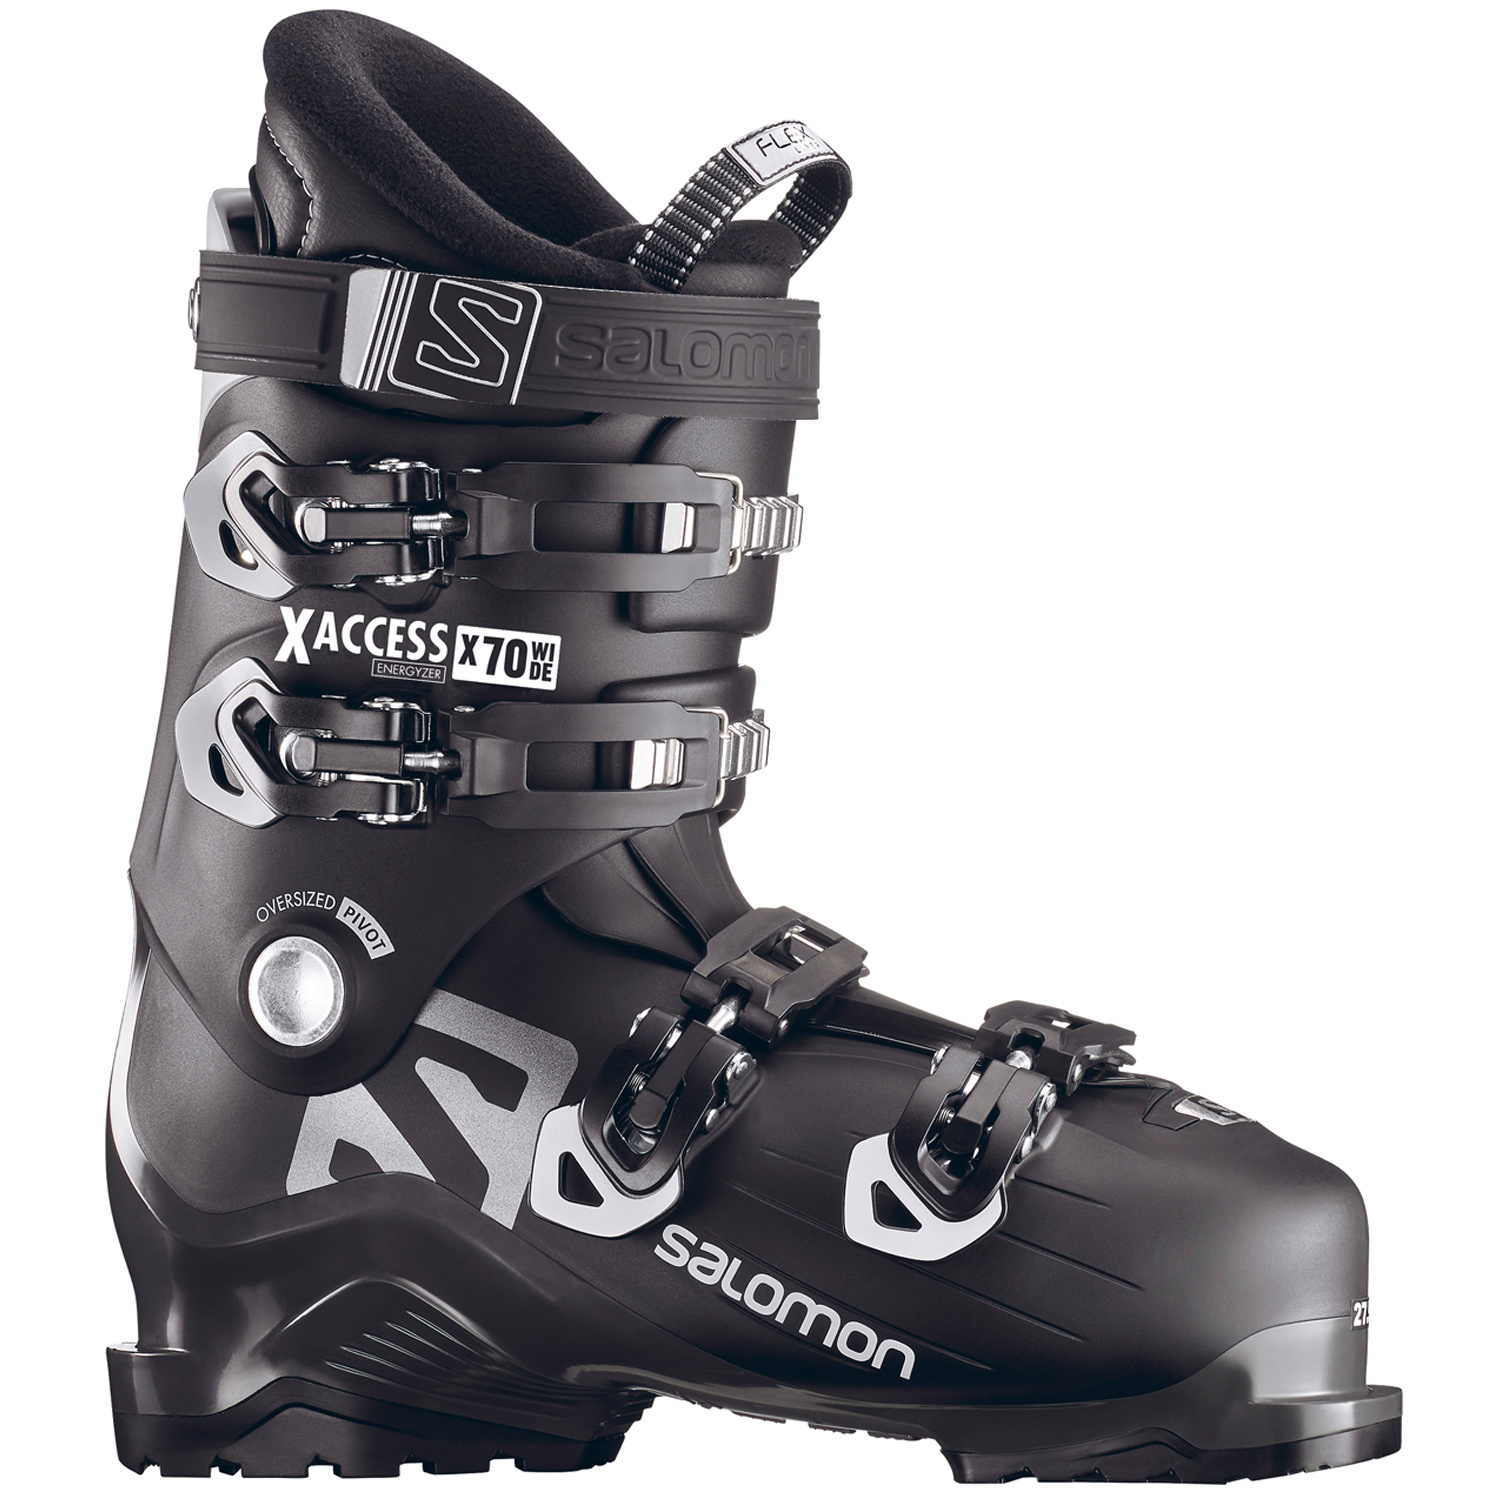 Salomon X ACCESS X70 wide Herren Skischuhe